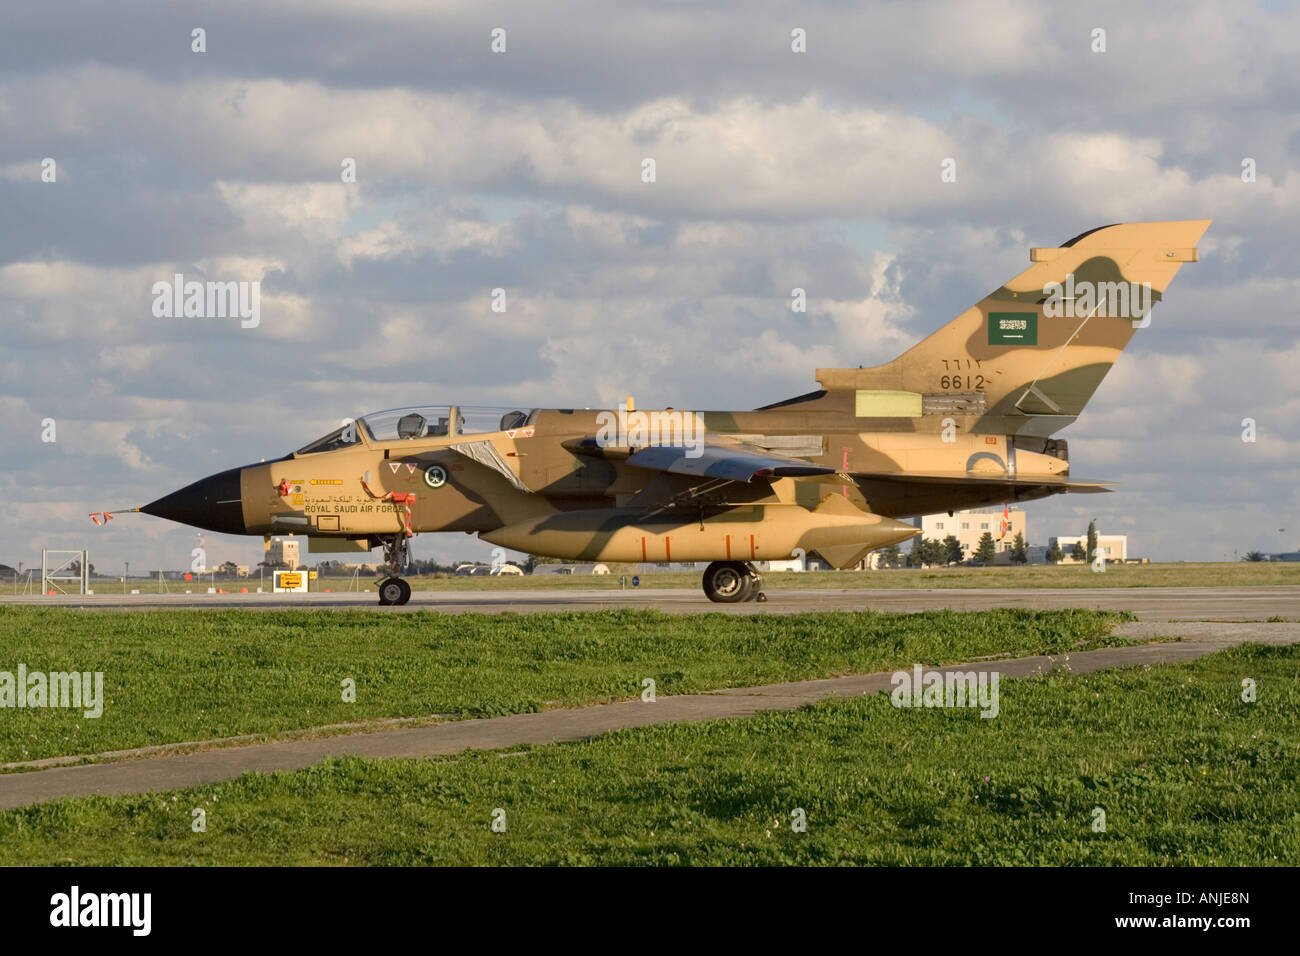 Royal Saudi Air Force Panavia Tornado IDS - Stock Image